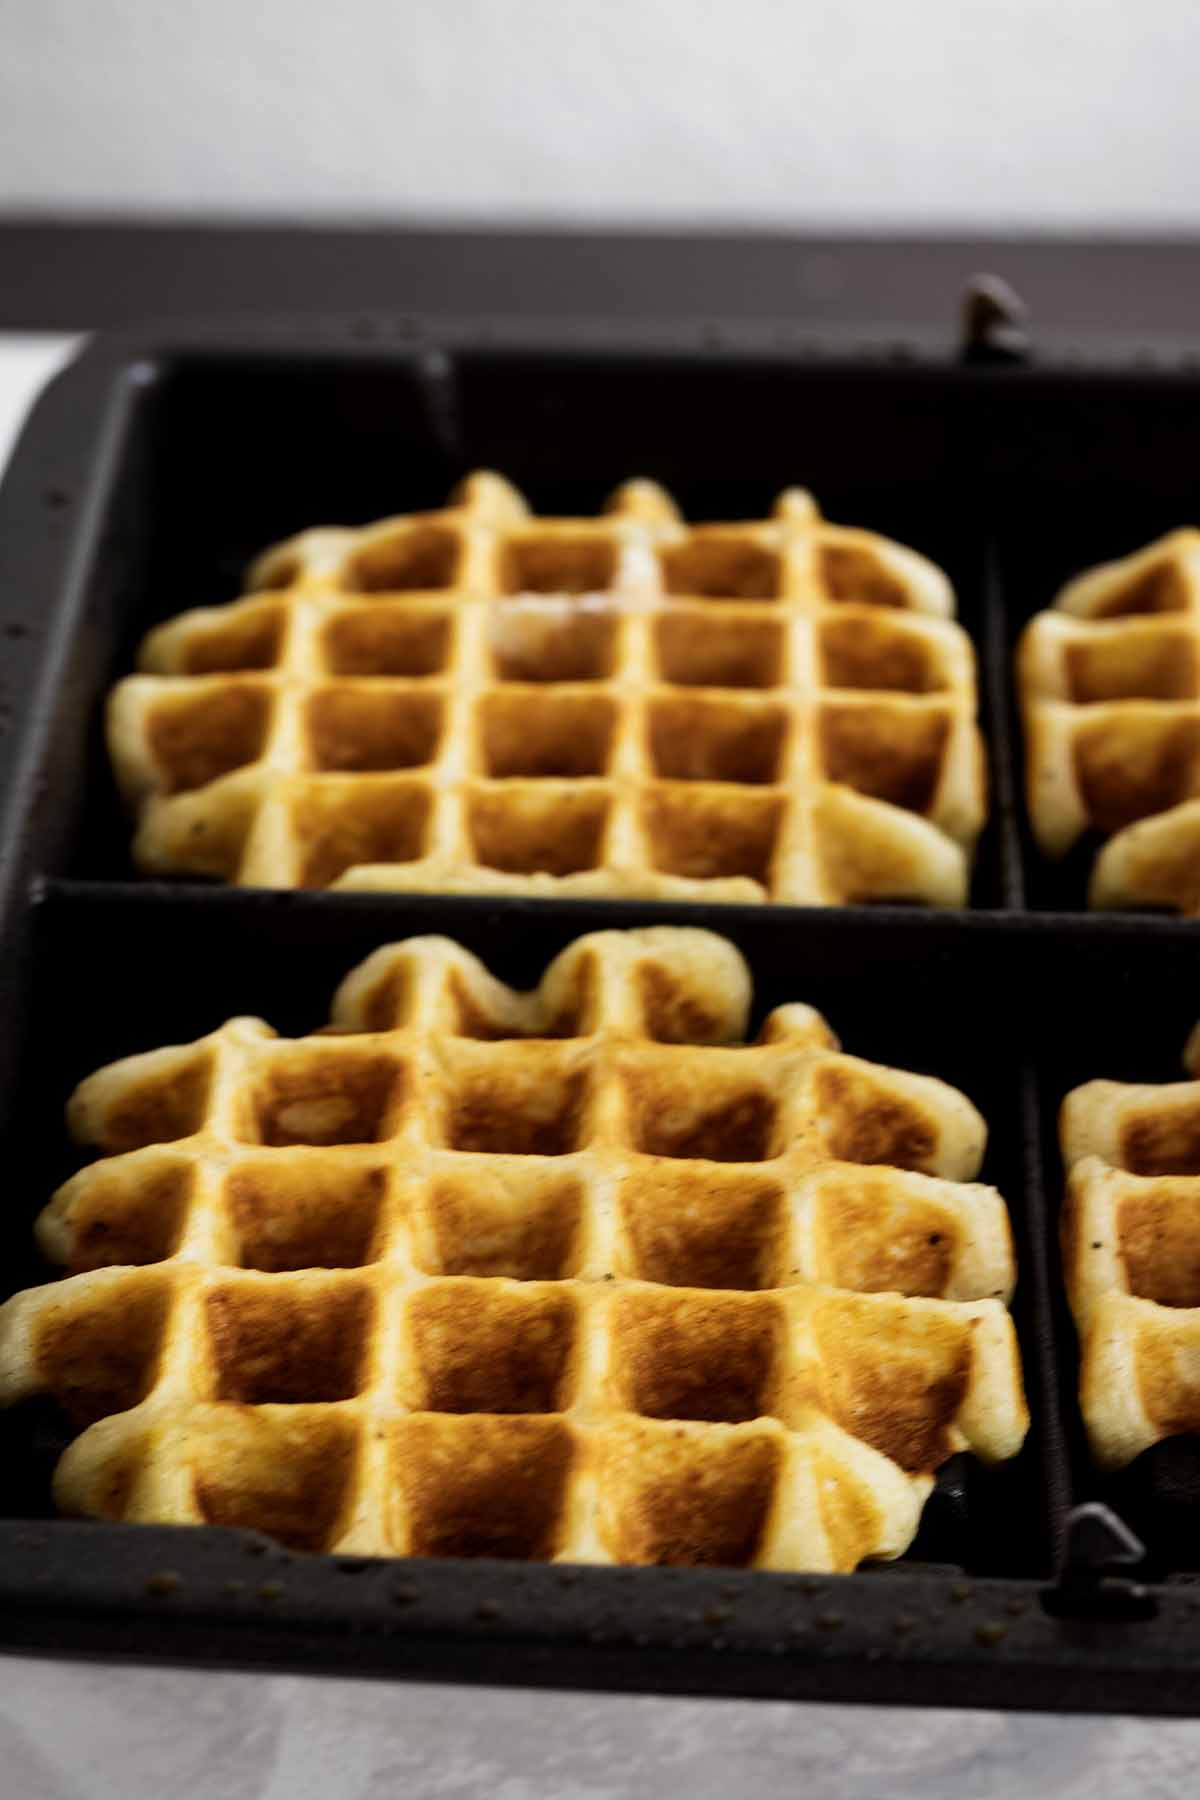 Waffles cooking on a waffle maker